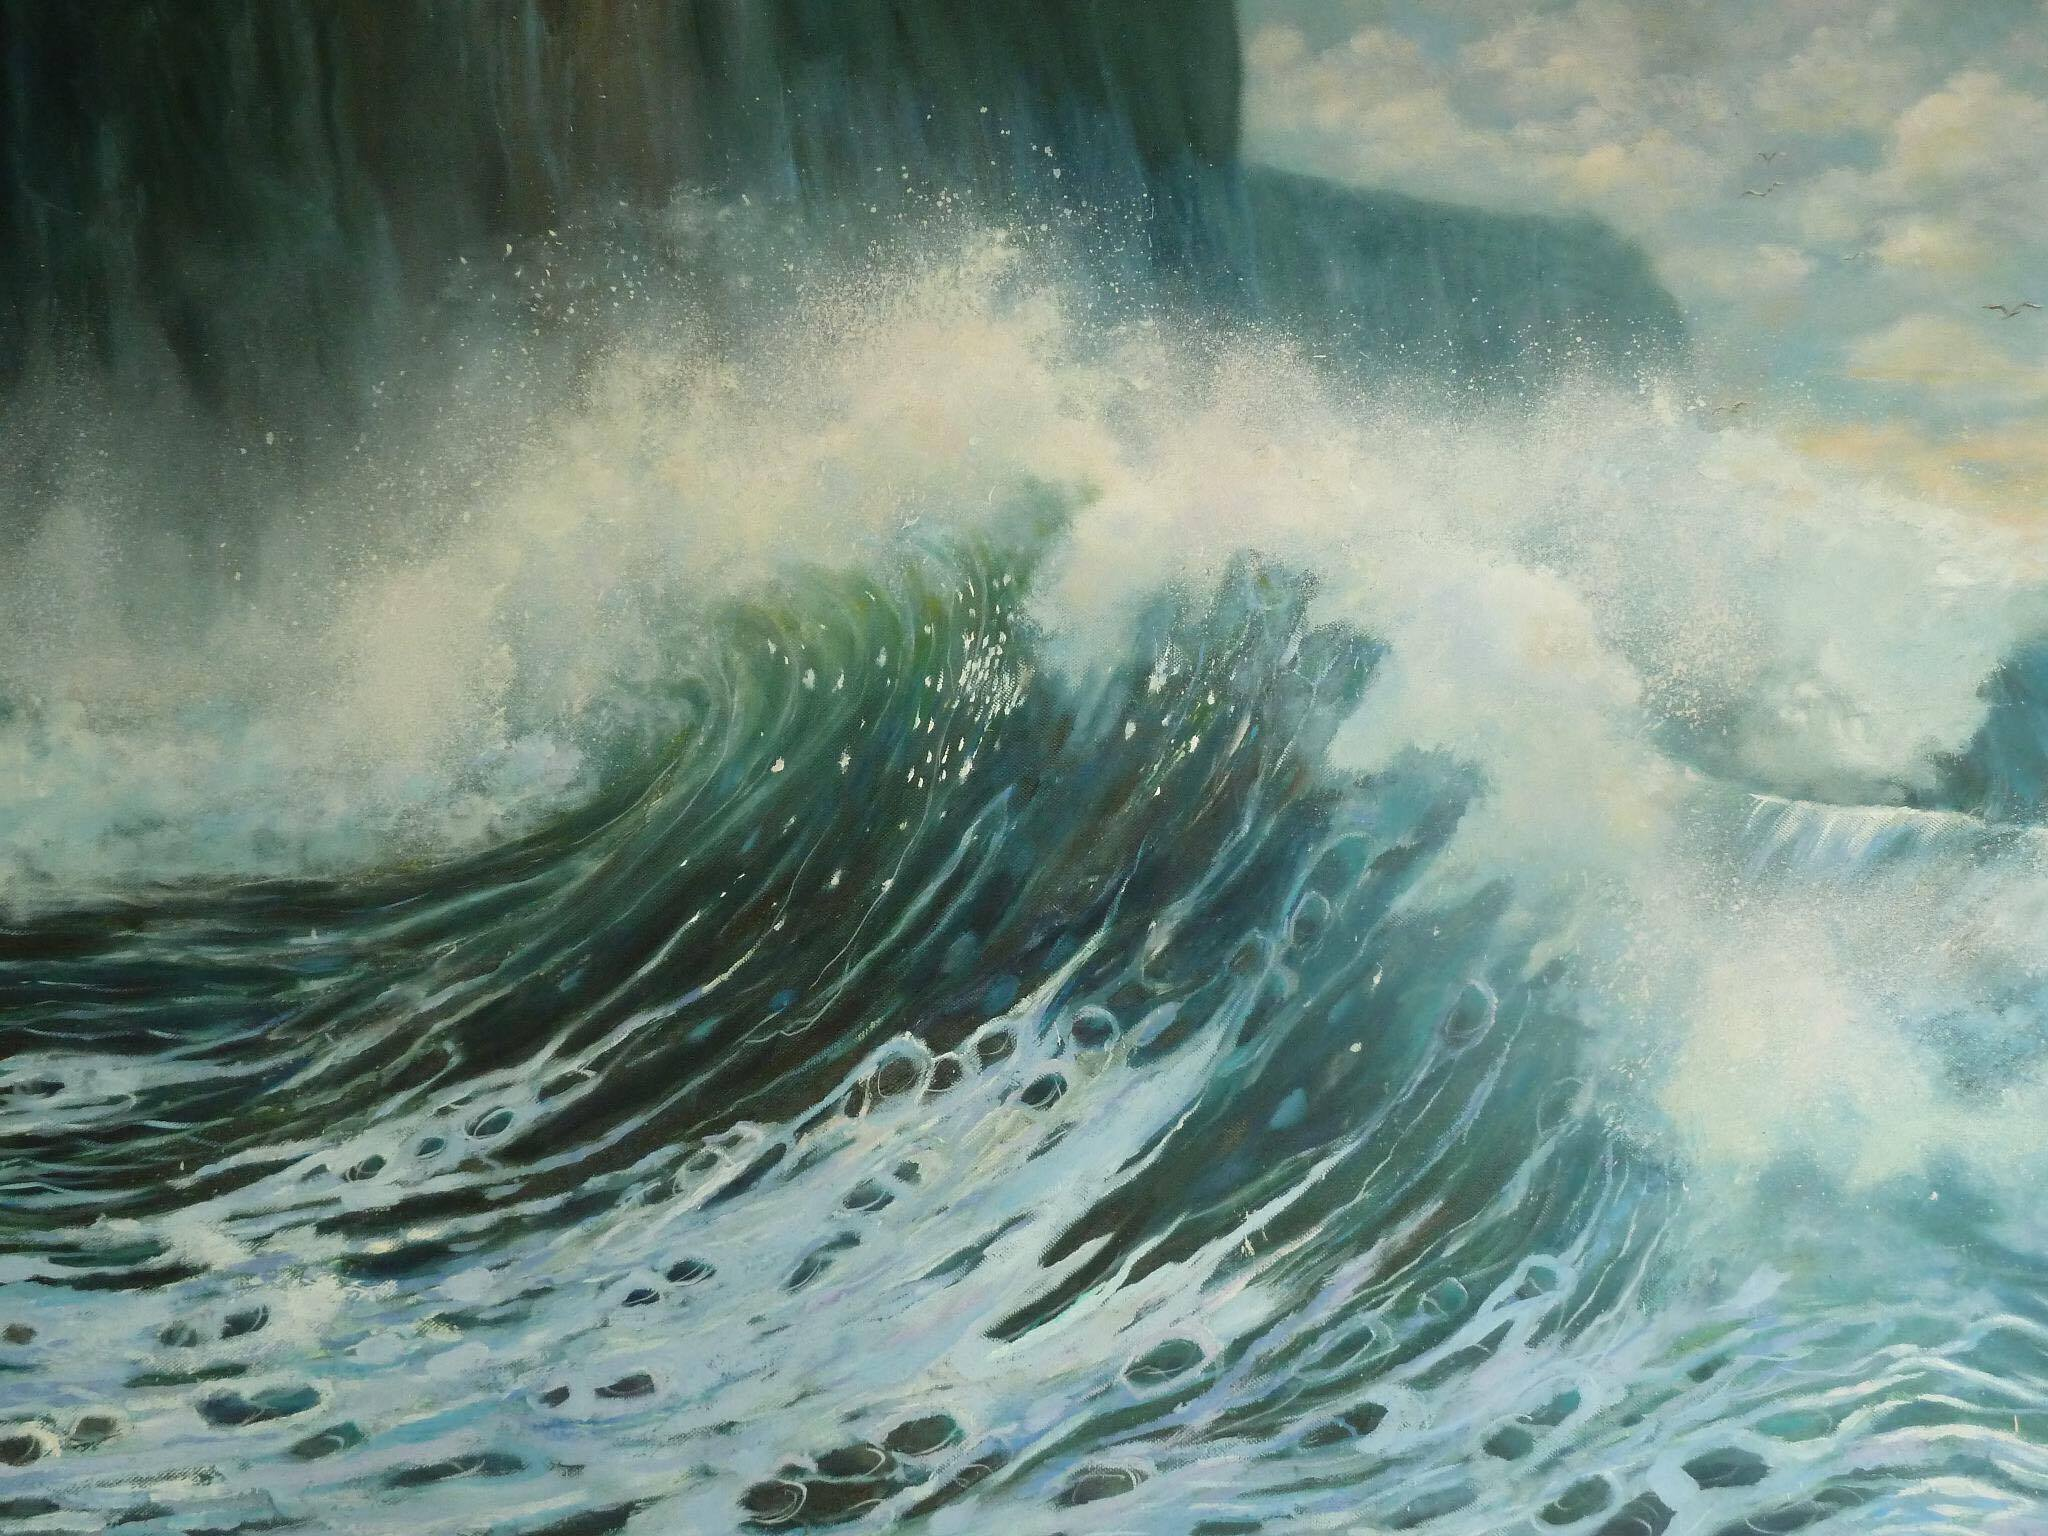 Atlantic Wave, Denise Coppola